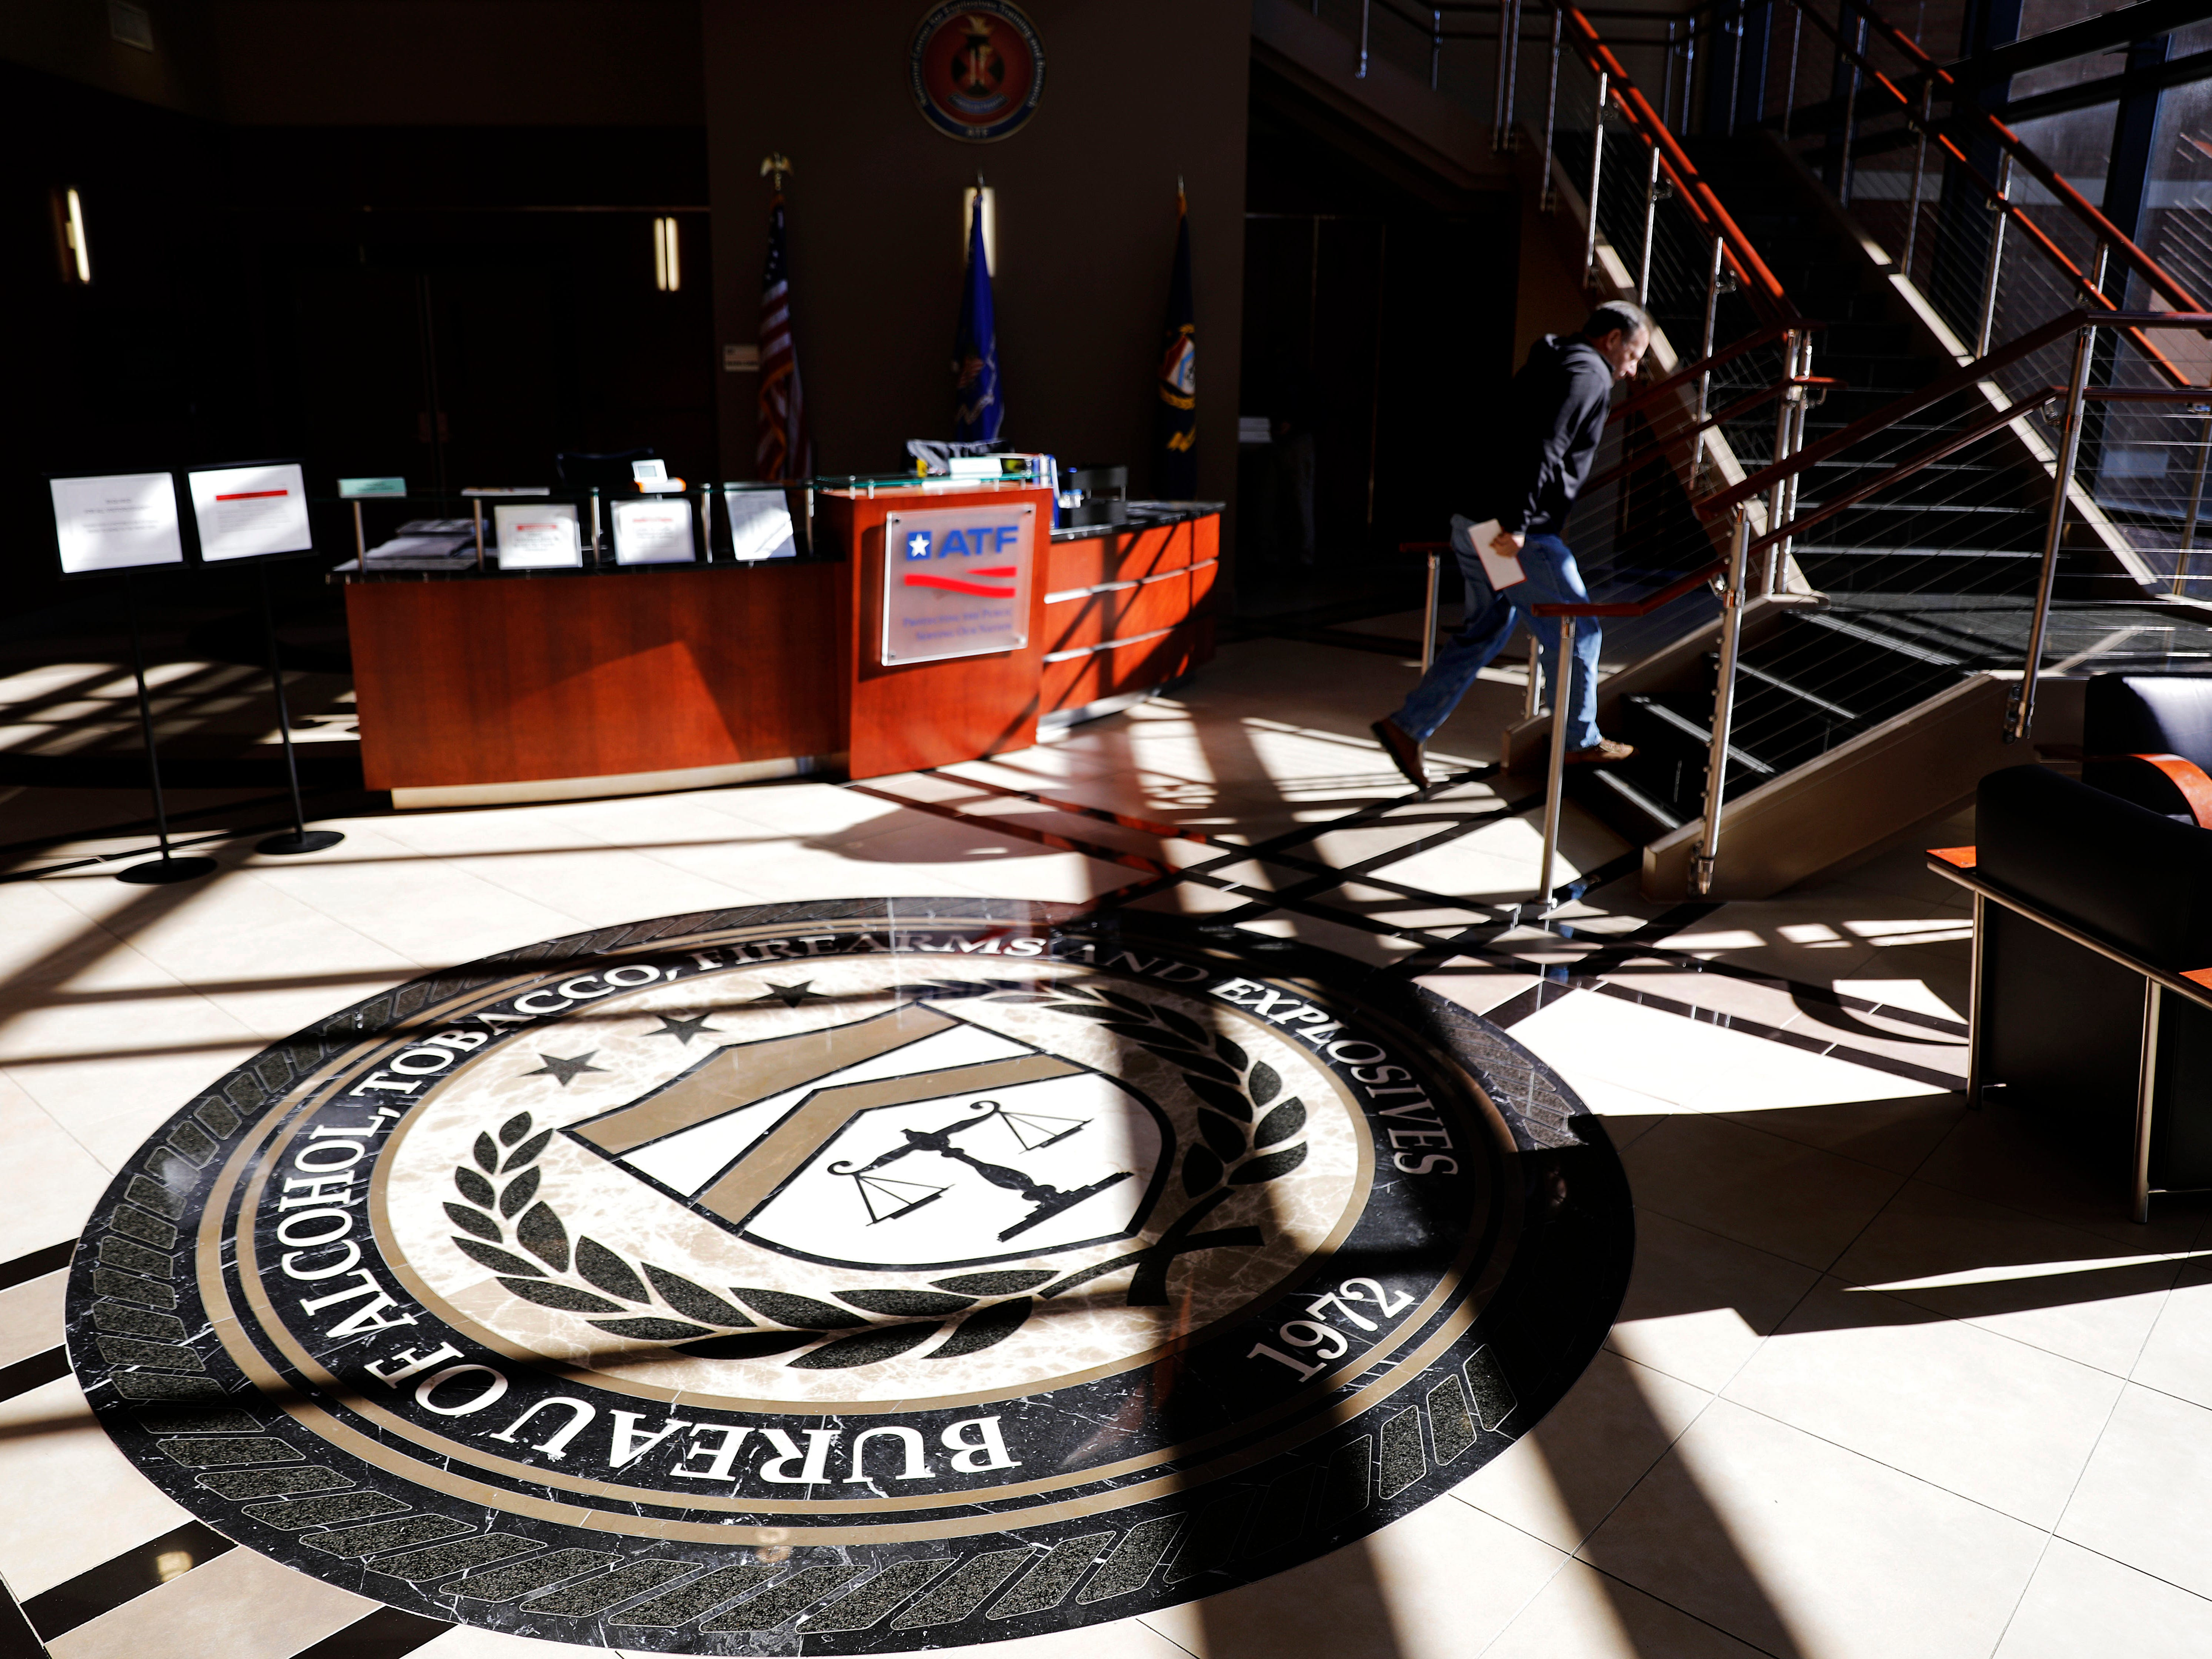 A worker walks through the empty lobby of the federal Bureau of Alcohol, Tobacco, Firearms and Explosives' National Center for Explosives Training and Research in Huntsville, Ala.,  Jan. 9, 2019. About 70 federal agencies are located at the Army's sprawling Redstone Arsenal, and more than half the area economy is tied to Washington spending.